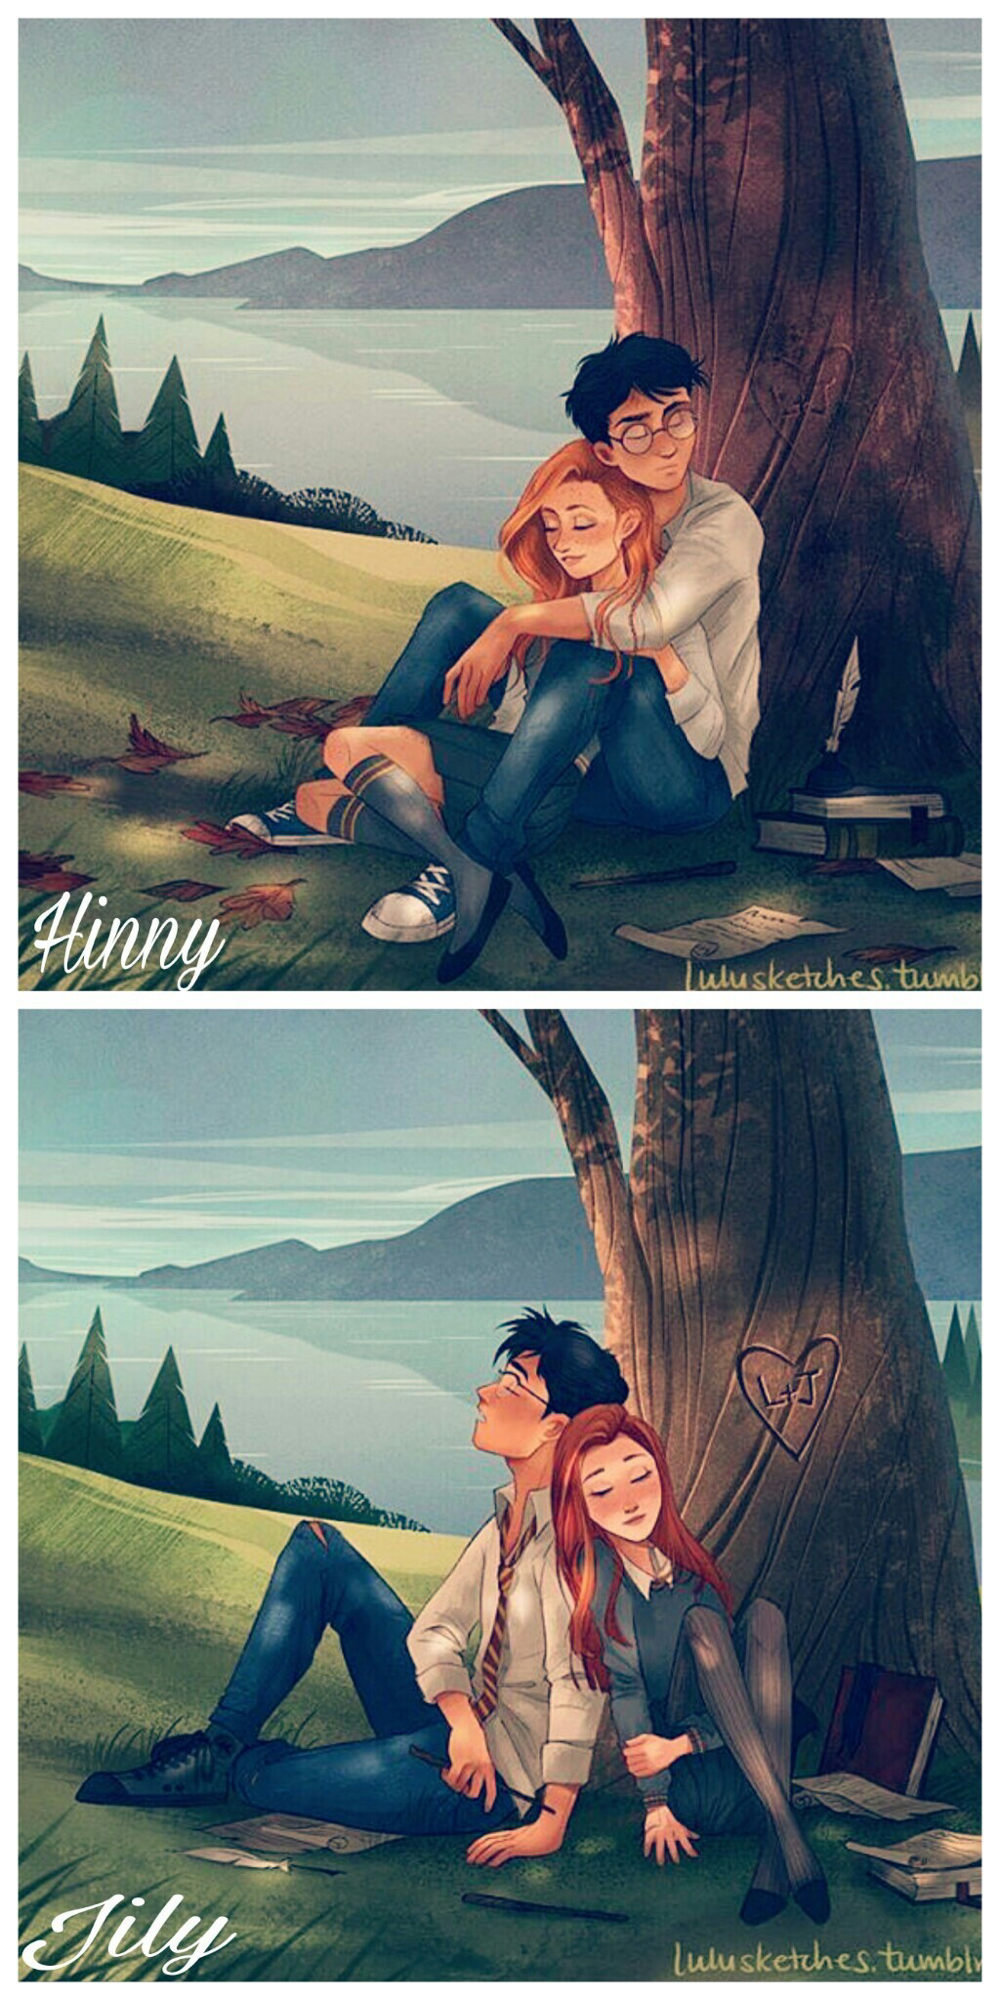 This is my favorite Harry Potter fan art so like if you agree (or if you at least think it's cute!!)